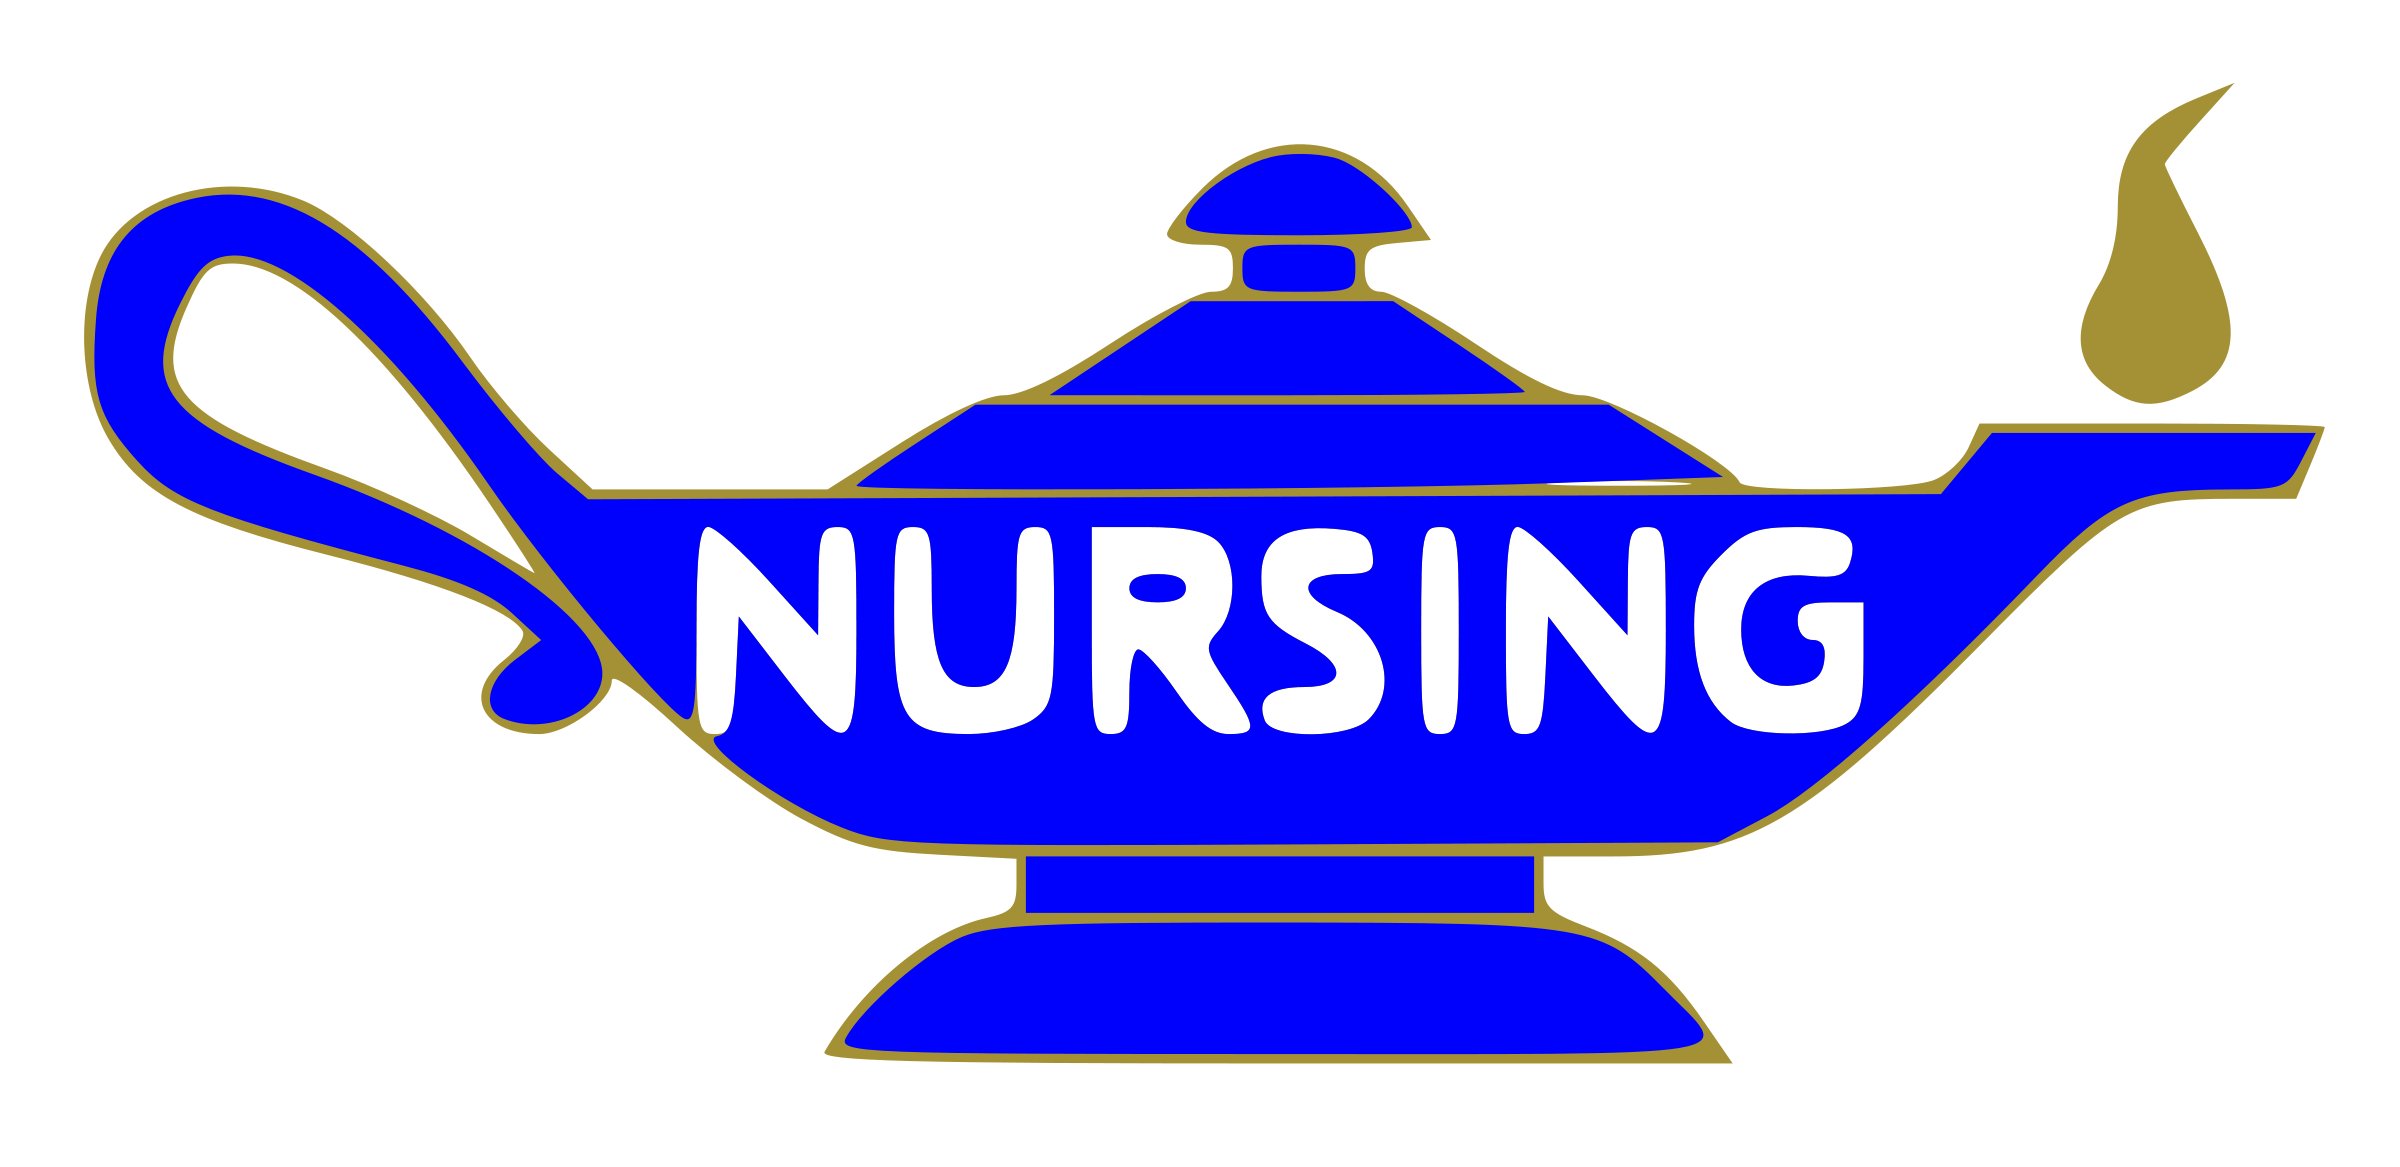 Nursing lamp clipart clipart free stock Free Nursing Lamp Cliparts, Download Free Clip Art, Free ... clipart free stock